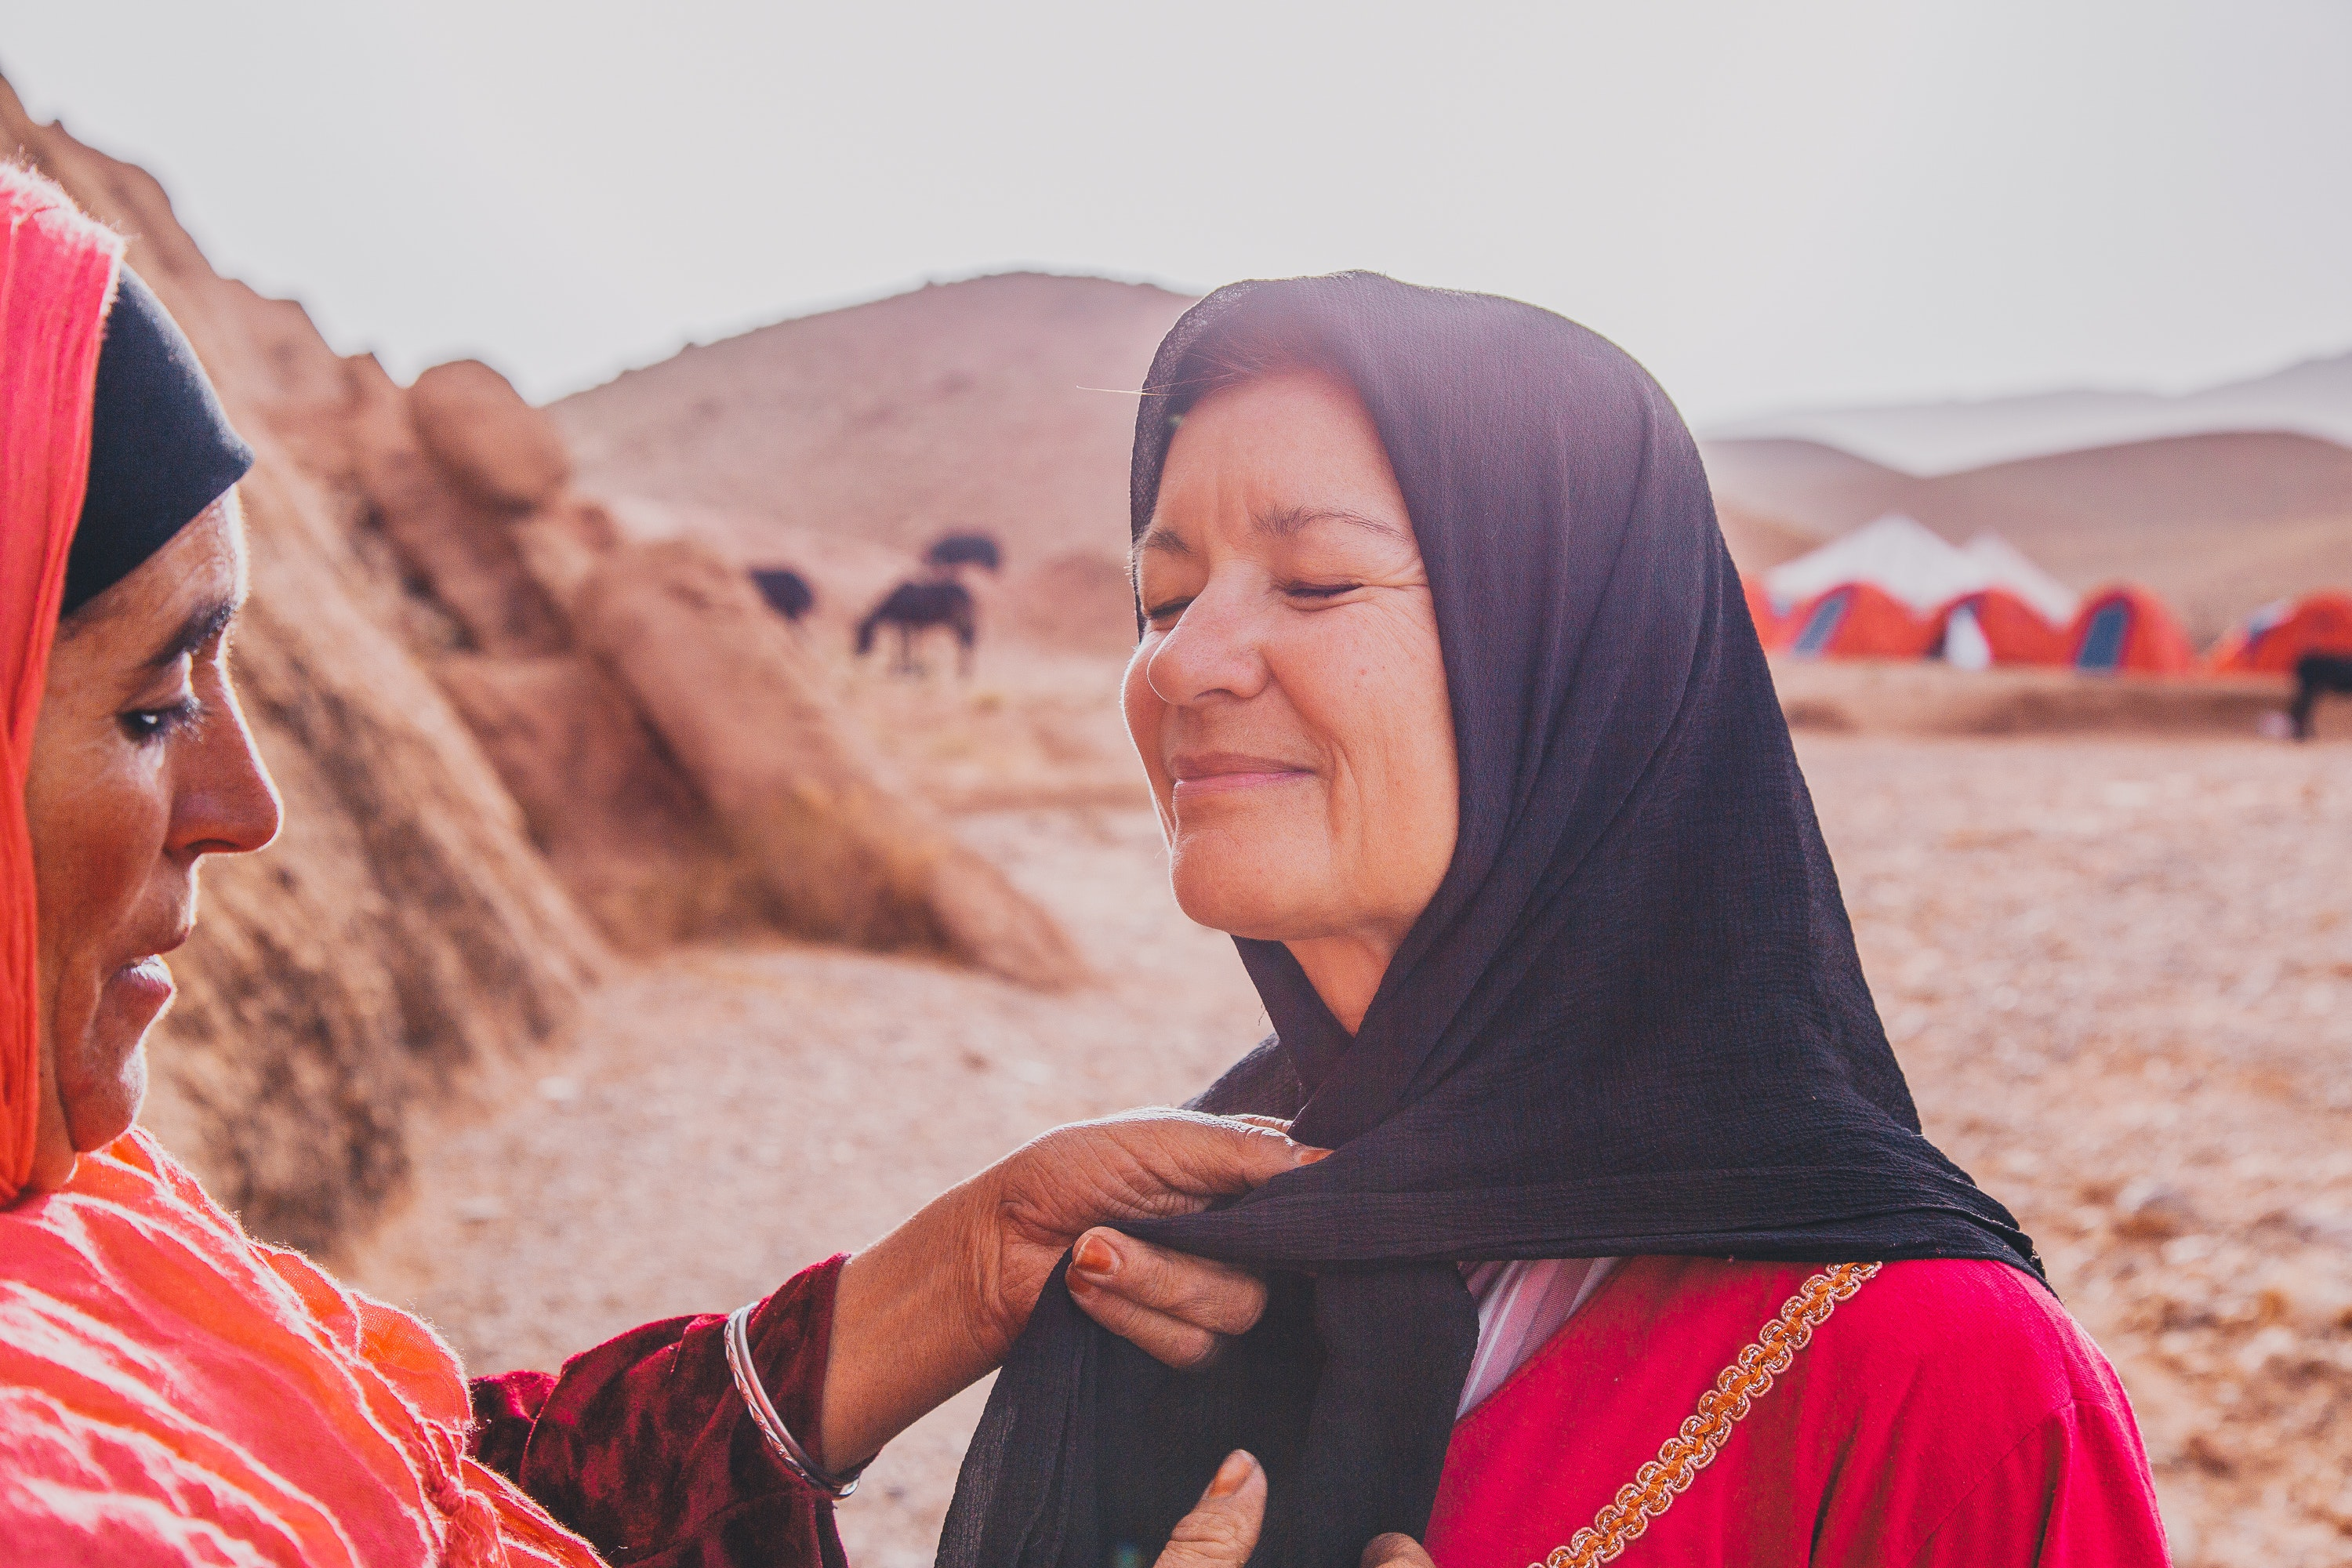 The Women's Expedition in Morocco reveals the ins and outs of life for Berber women.